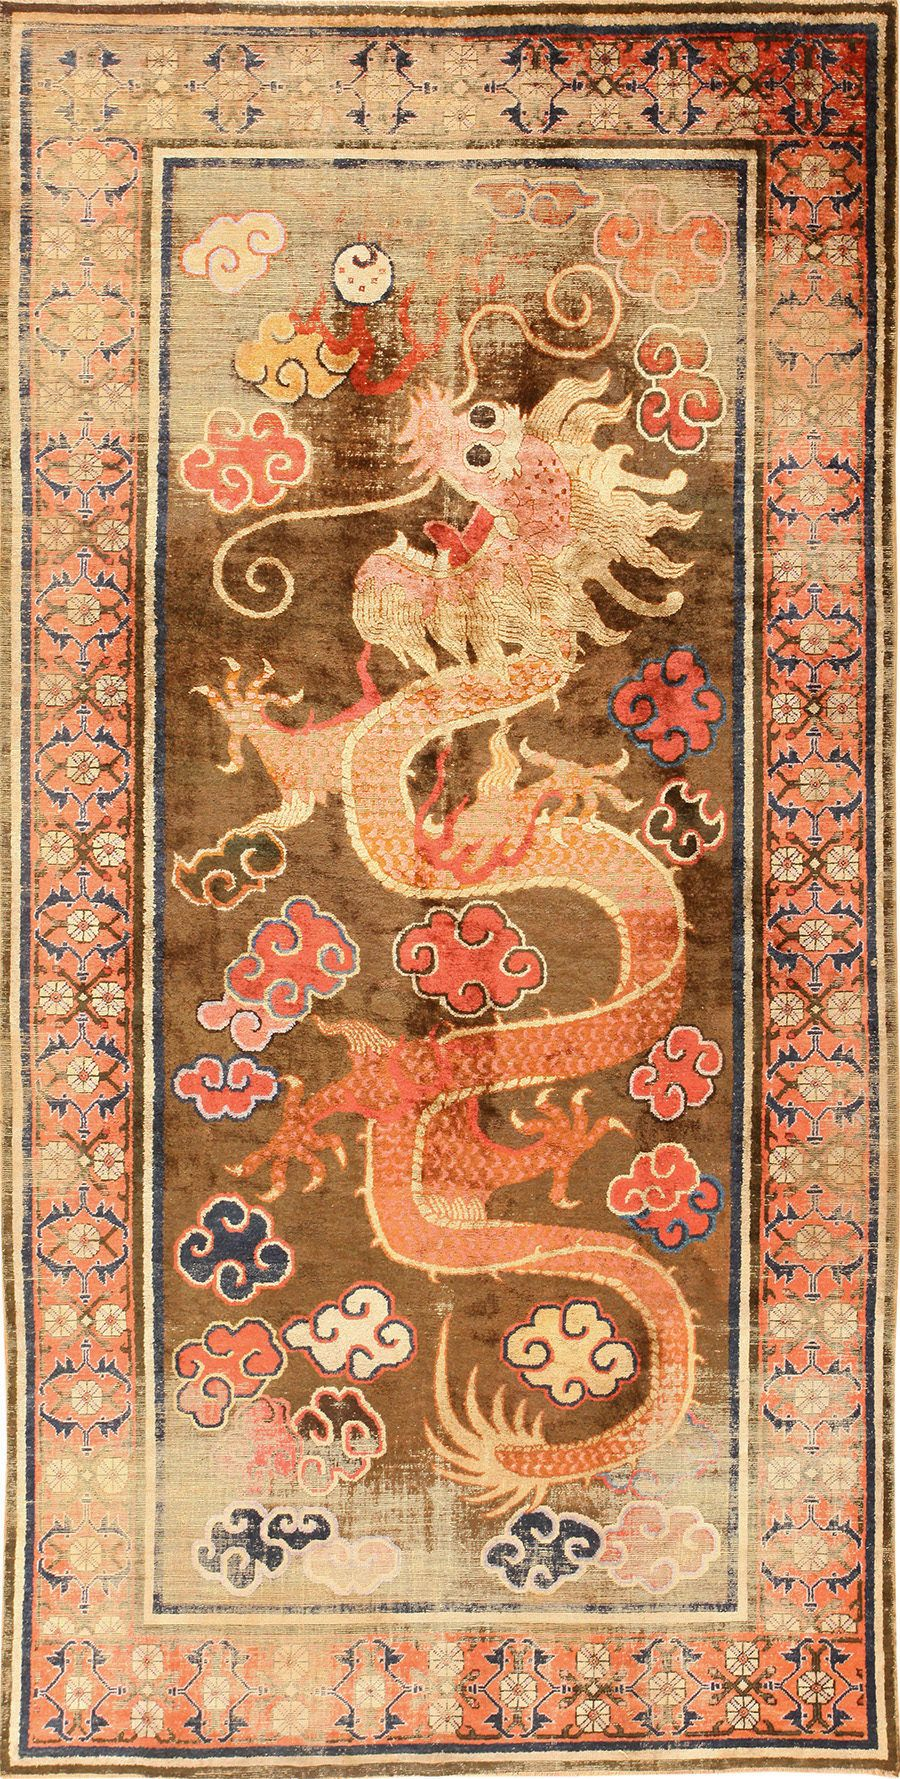 Antique Silk Dragon Chinese Rug 48997 Chinese Rug Antique Rugs Rugs On Carpet